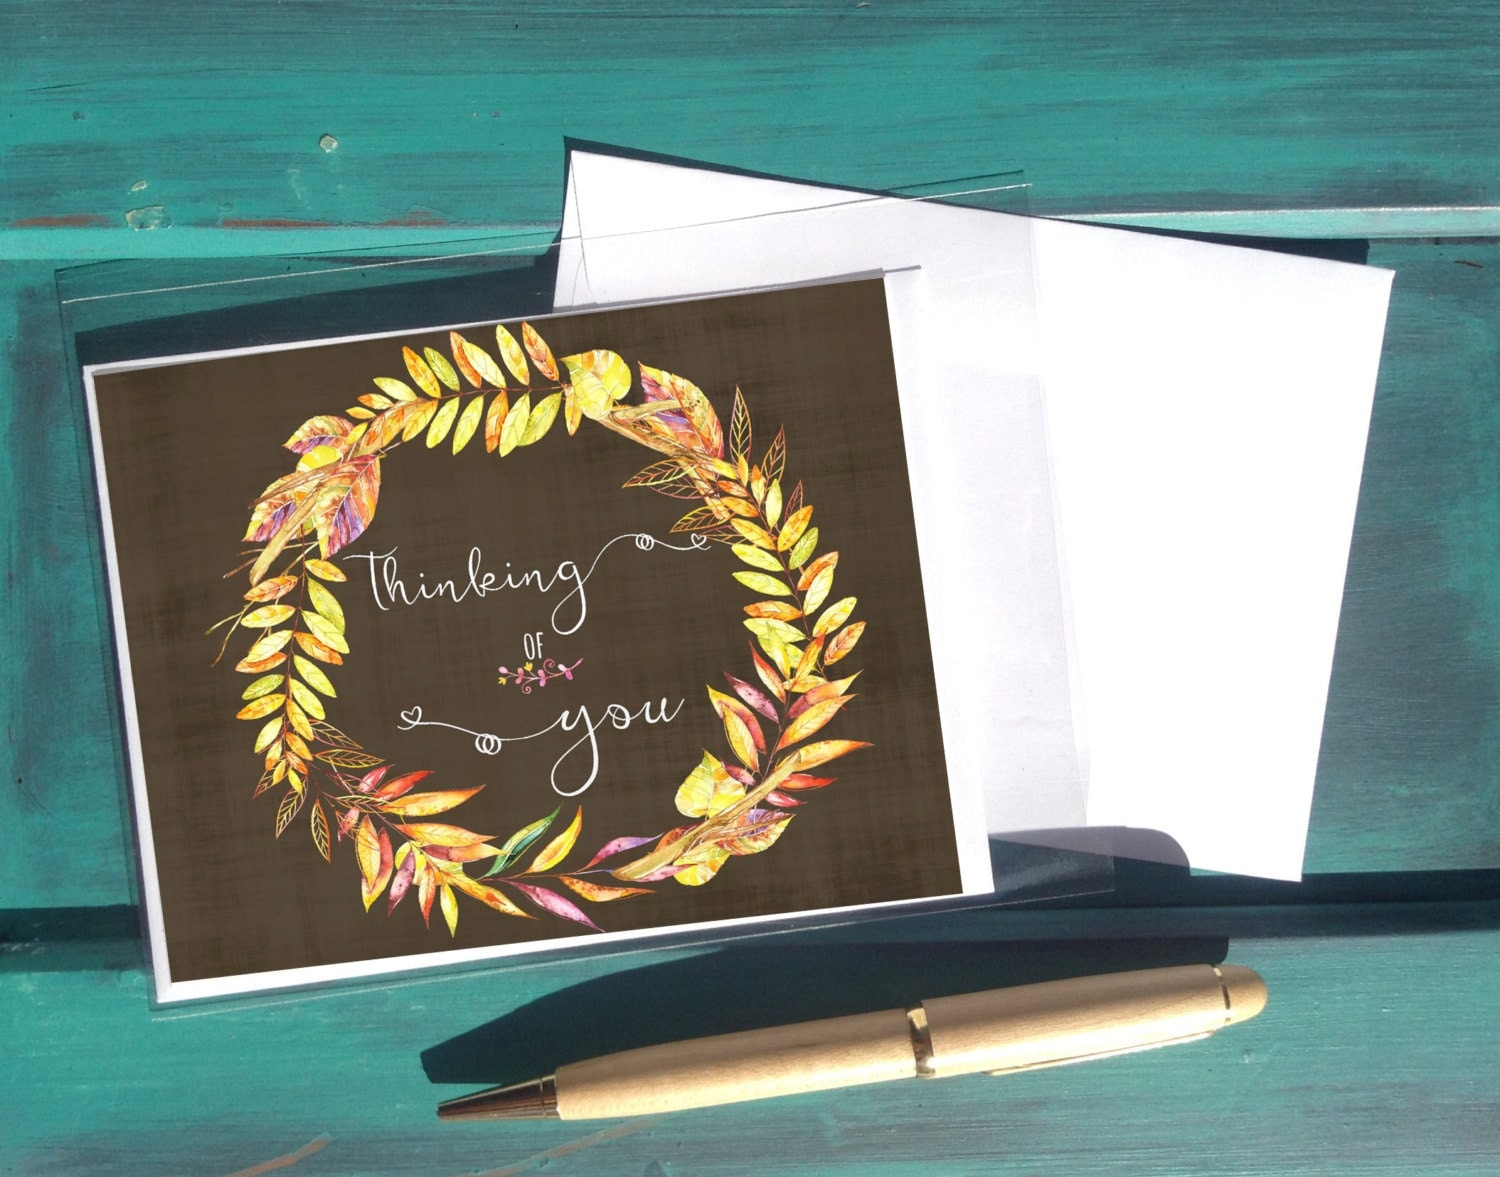 Thinking of you jw greeting cards